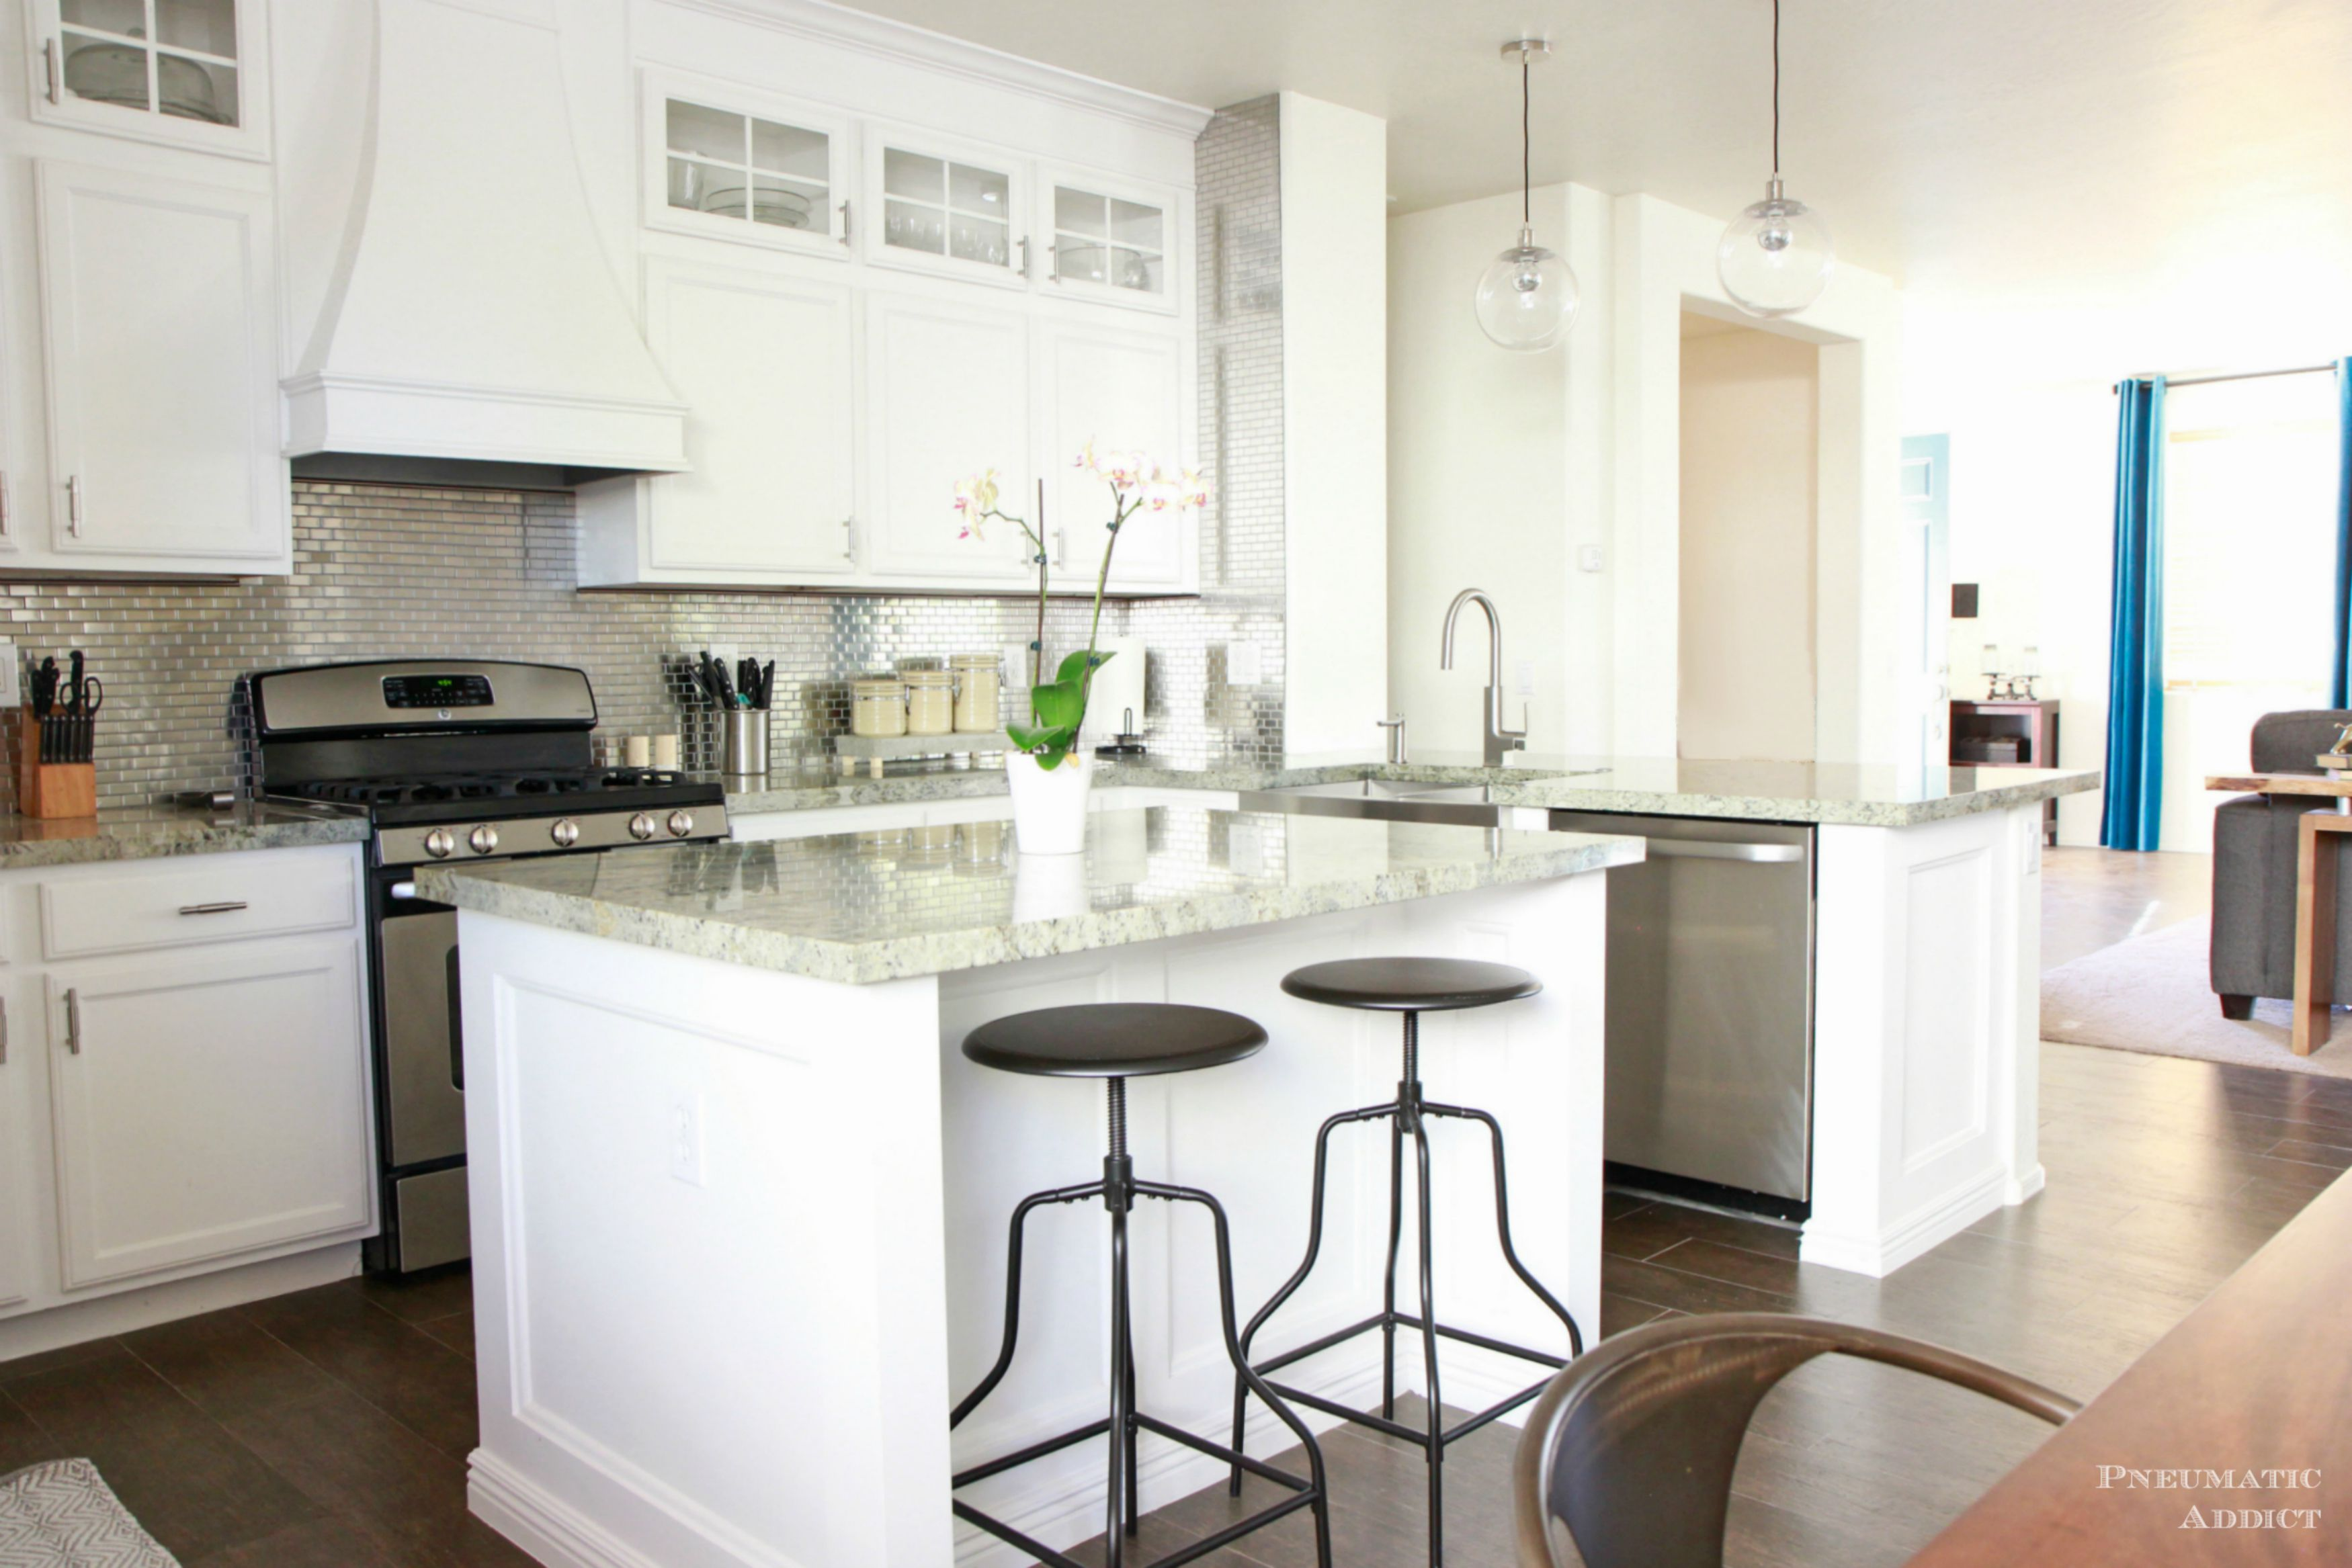 11 best white kitchen cabinets - design ideas for white cabinets EJLDEPU